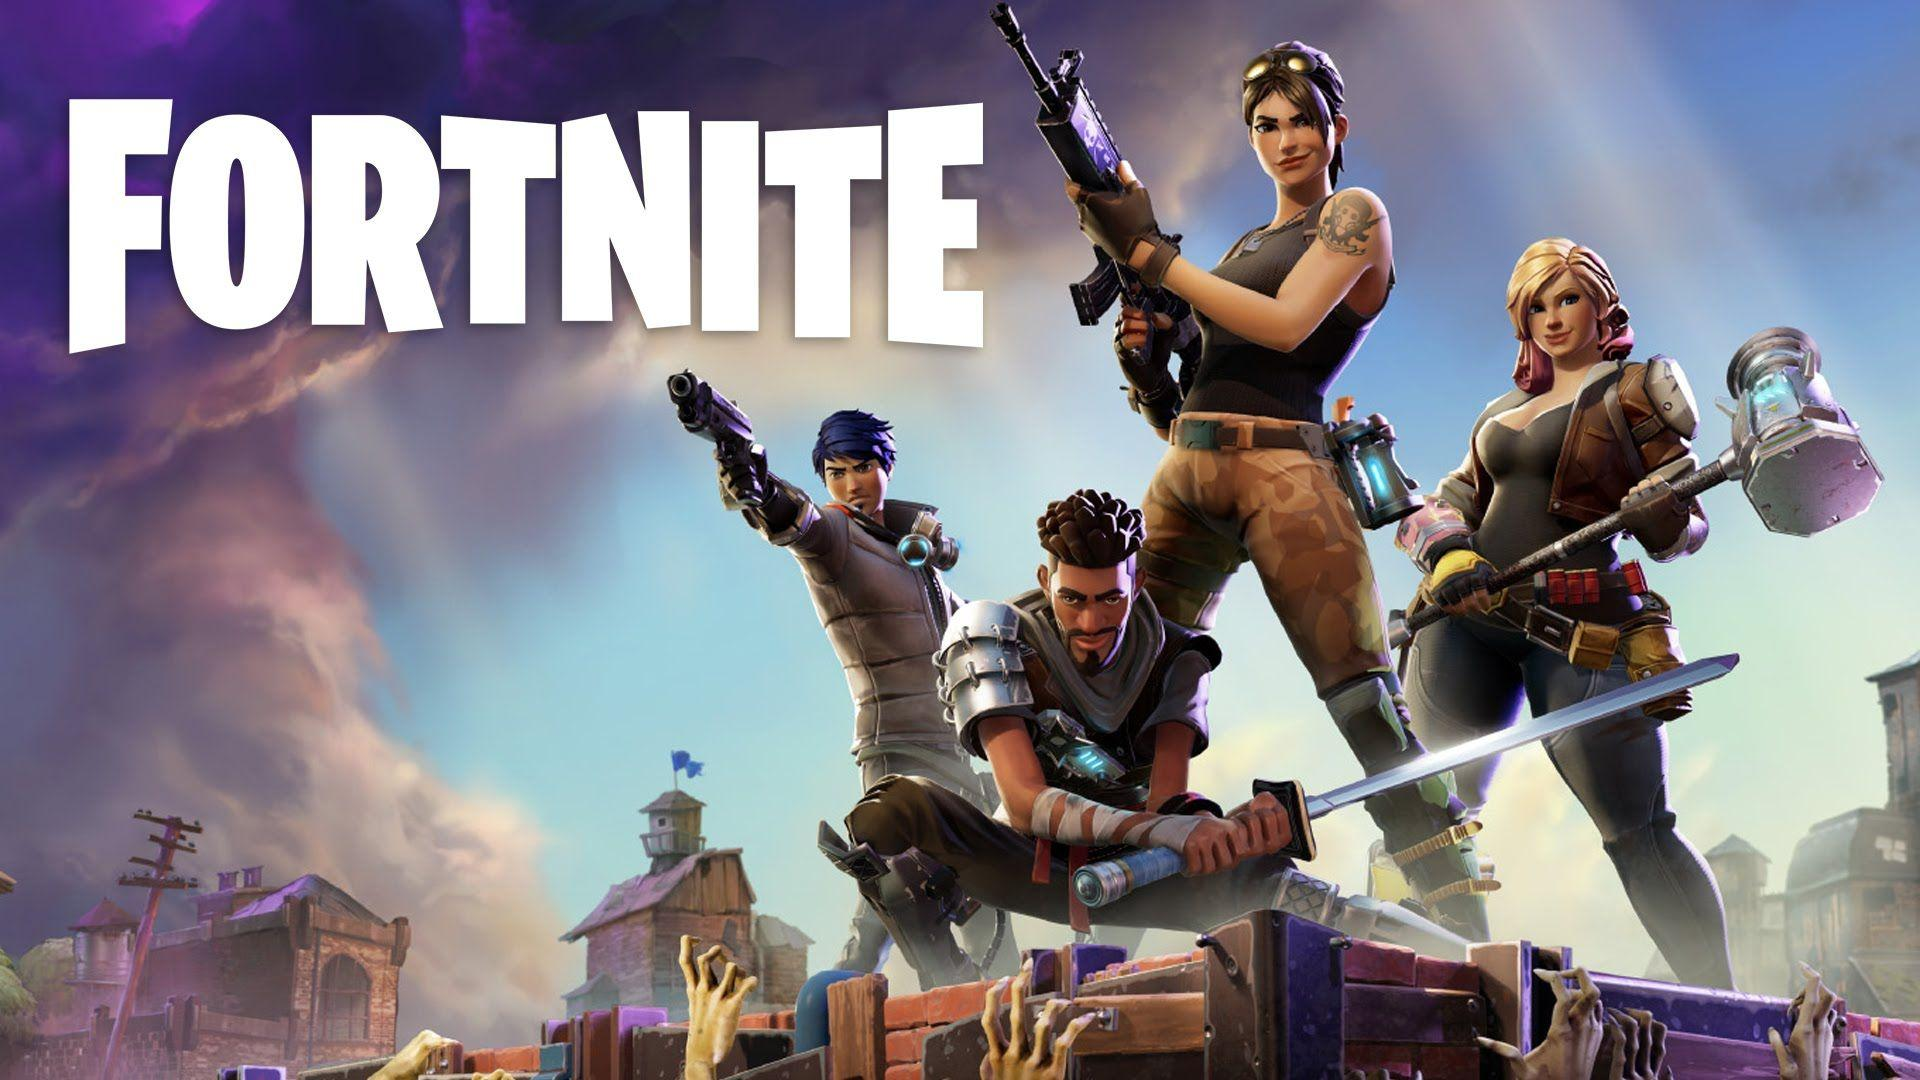 The folks behind PUBG claim Fortnite's Battle Royale mode is a ...